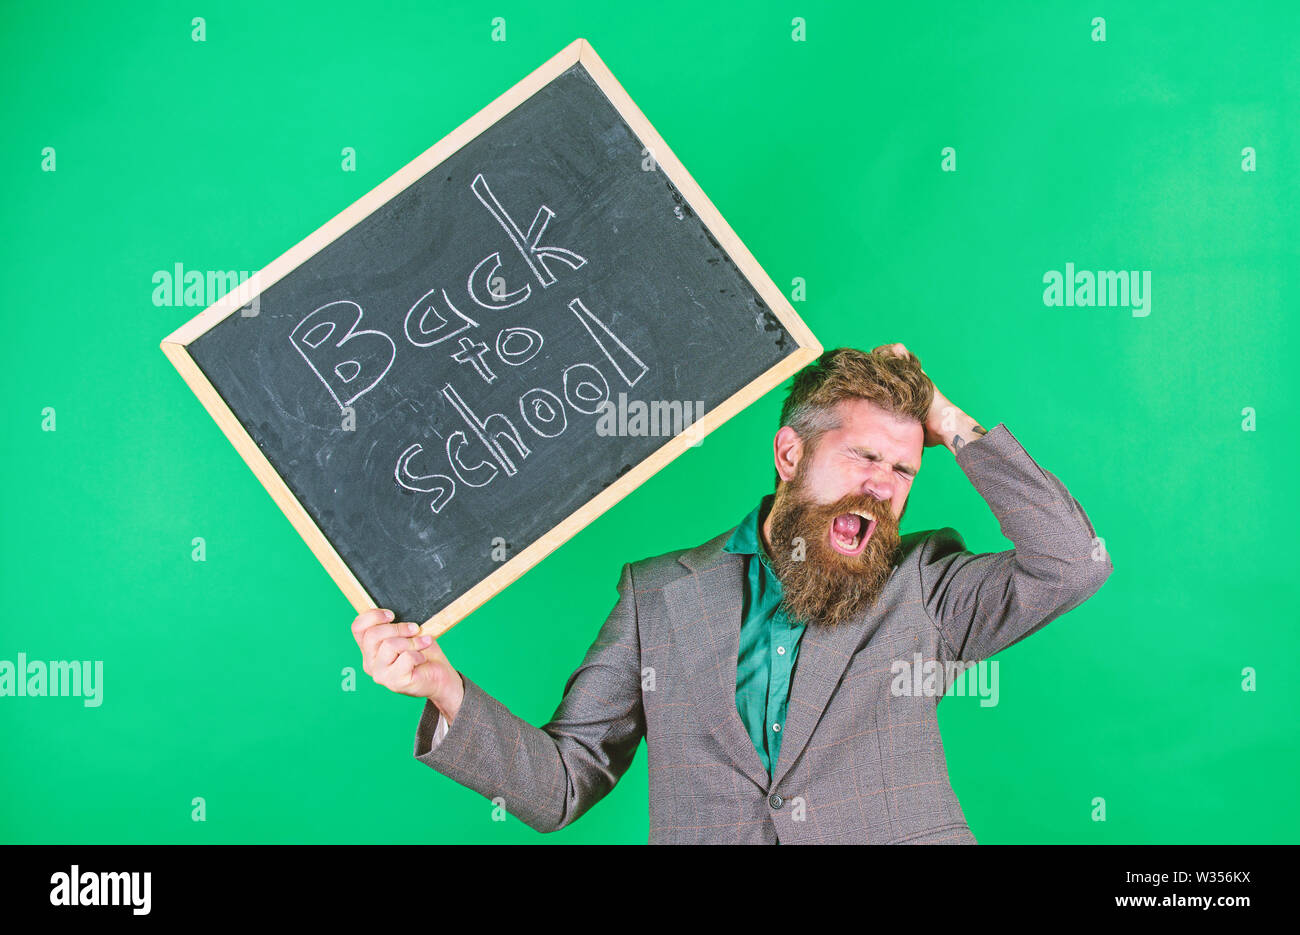 Teacher with tousled hair stressful about school year beginning. Teacher bearded man holds blackboard with inscription back to school green background. Keep working. Teaching stressful occupation. - Stock Image